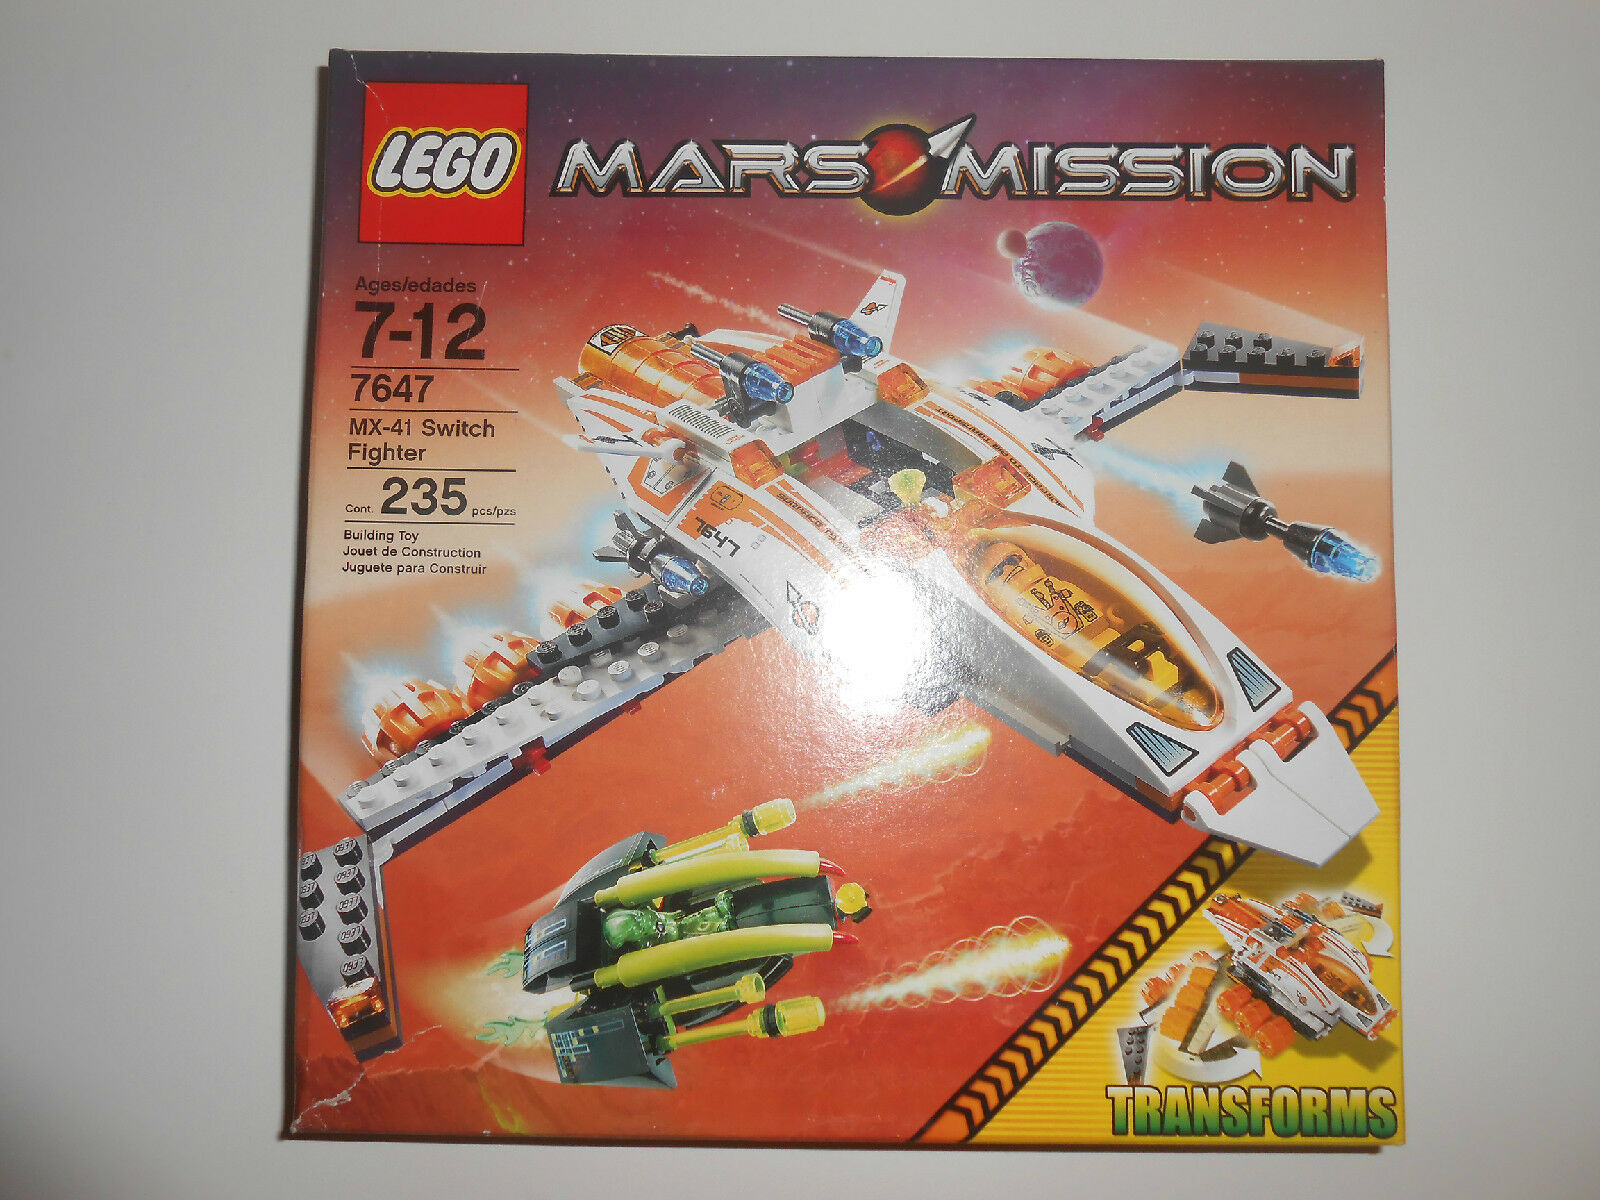 Lego Mars Mission MX-41 Switch Fighter 7647 New in Sealed Box